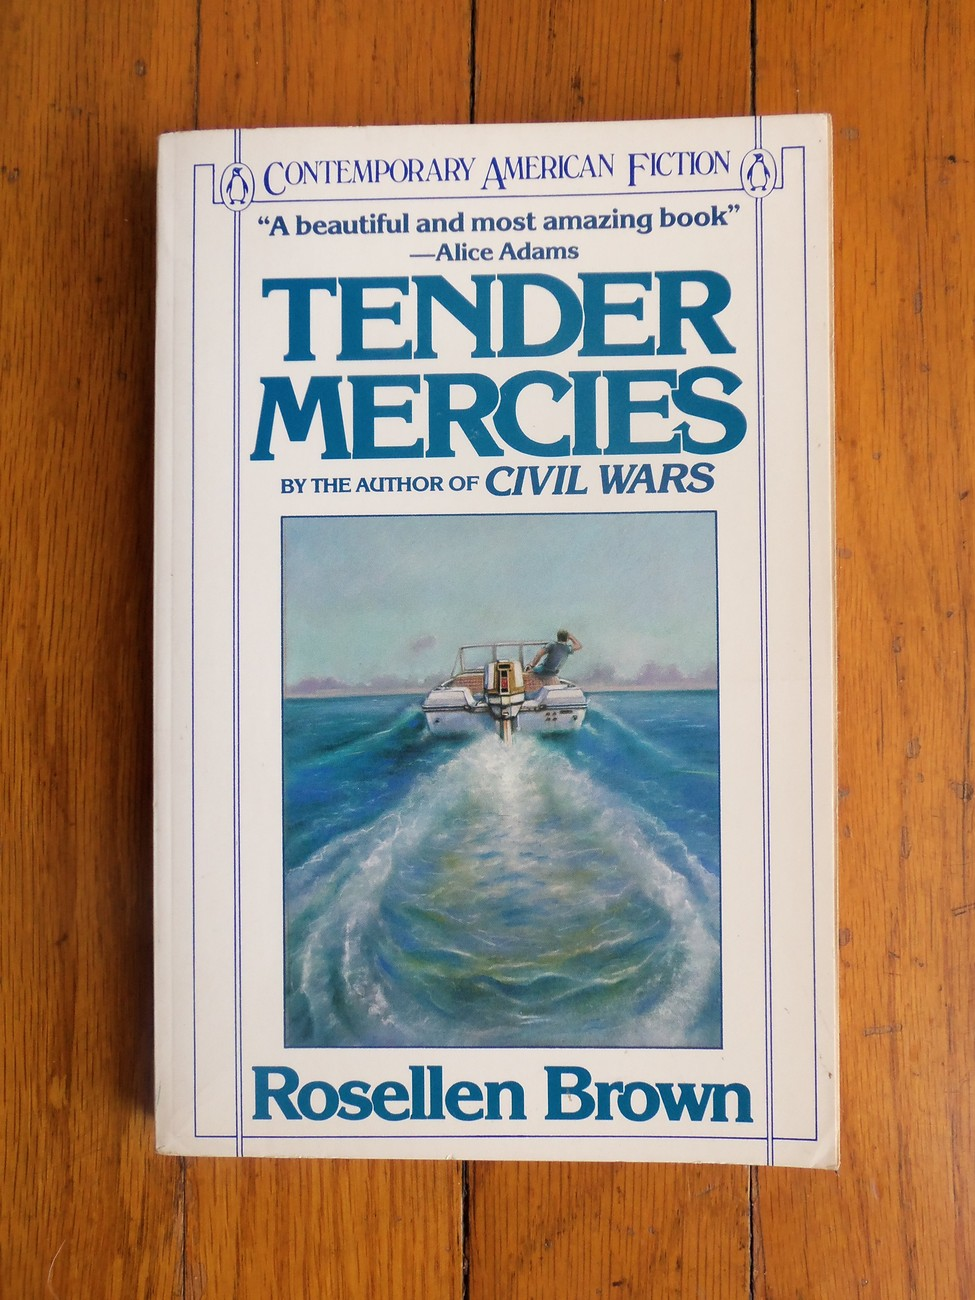 Tender Mercies by Rosellen Brown